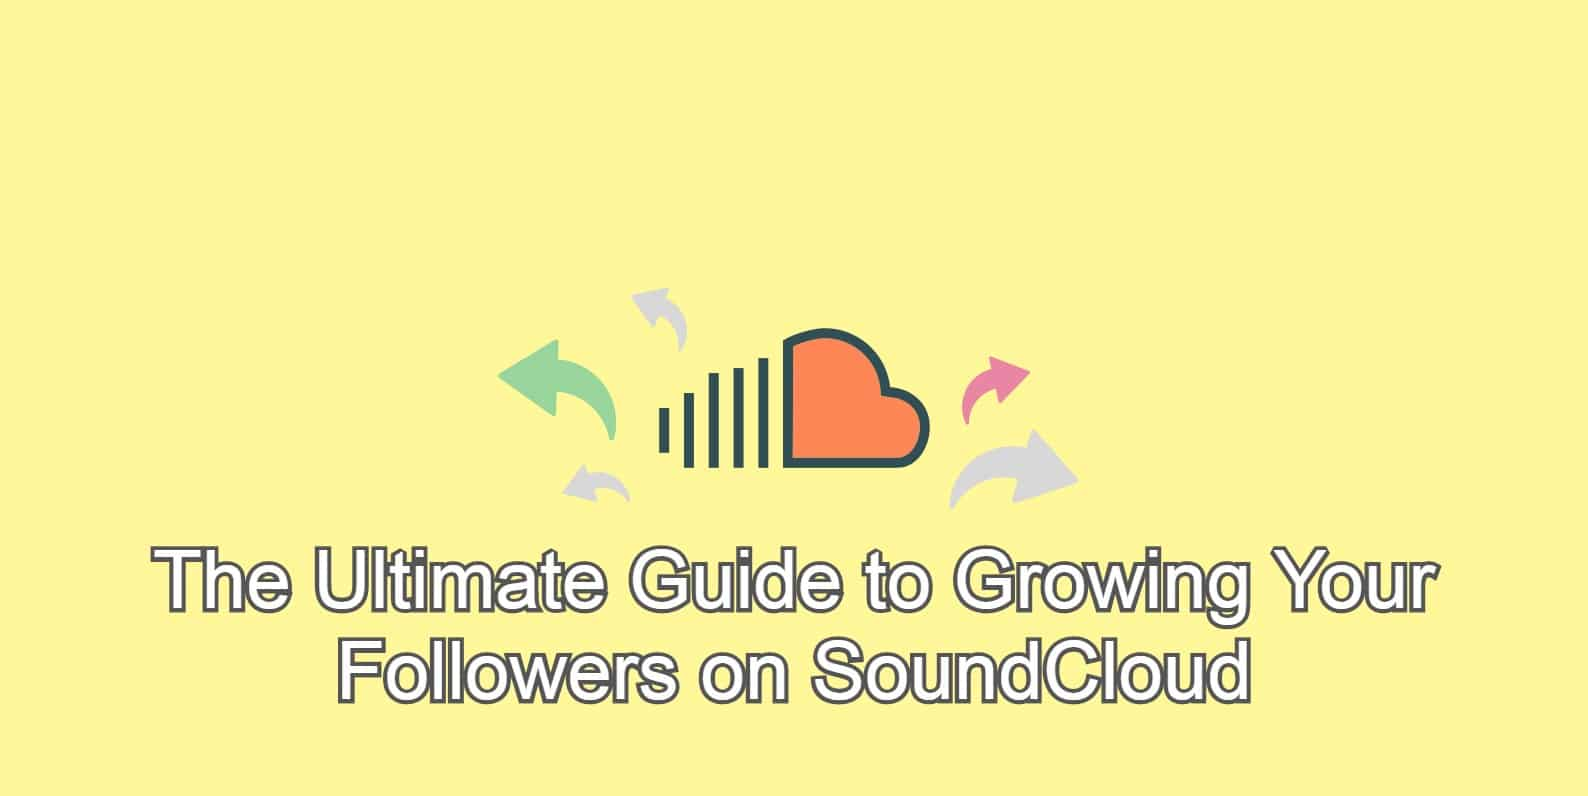 The Ultimate Guide to Growing Your Followers on SoundCloud